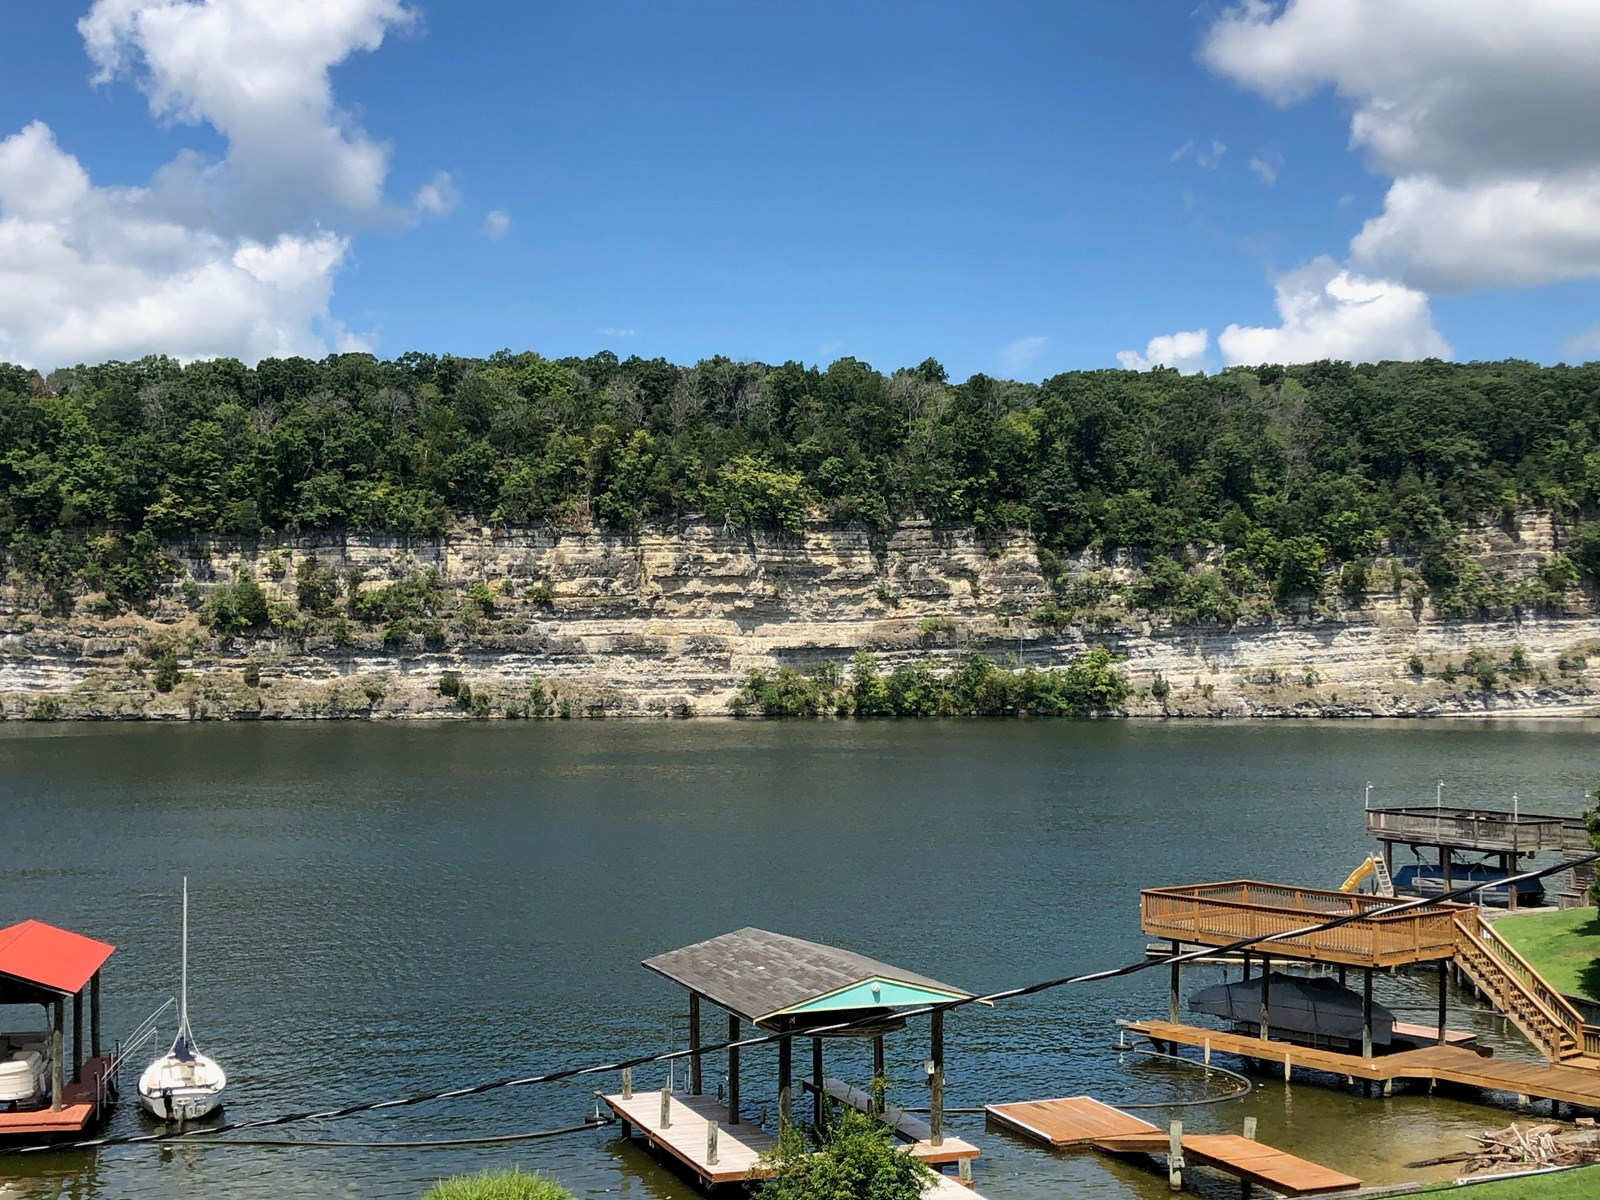 Claytor Lake Lot for Sale!